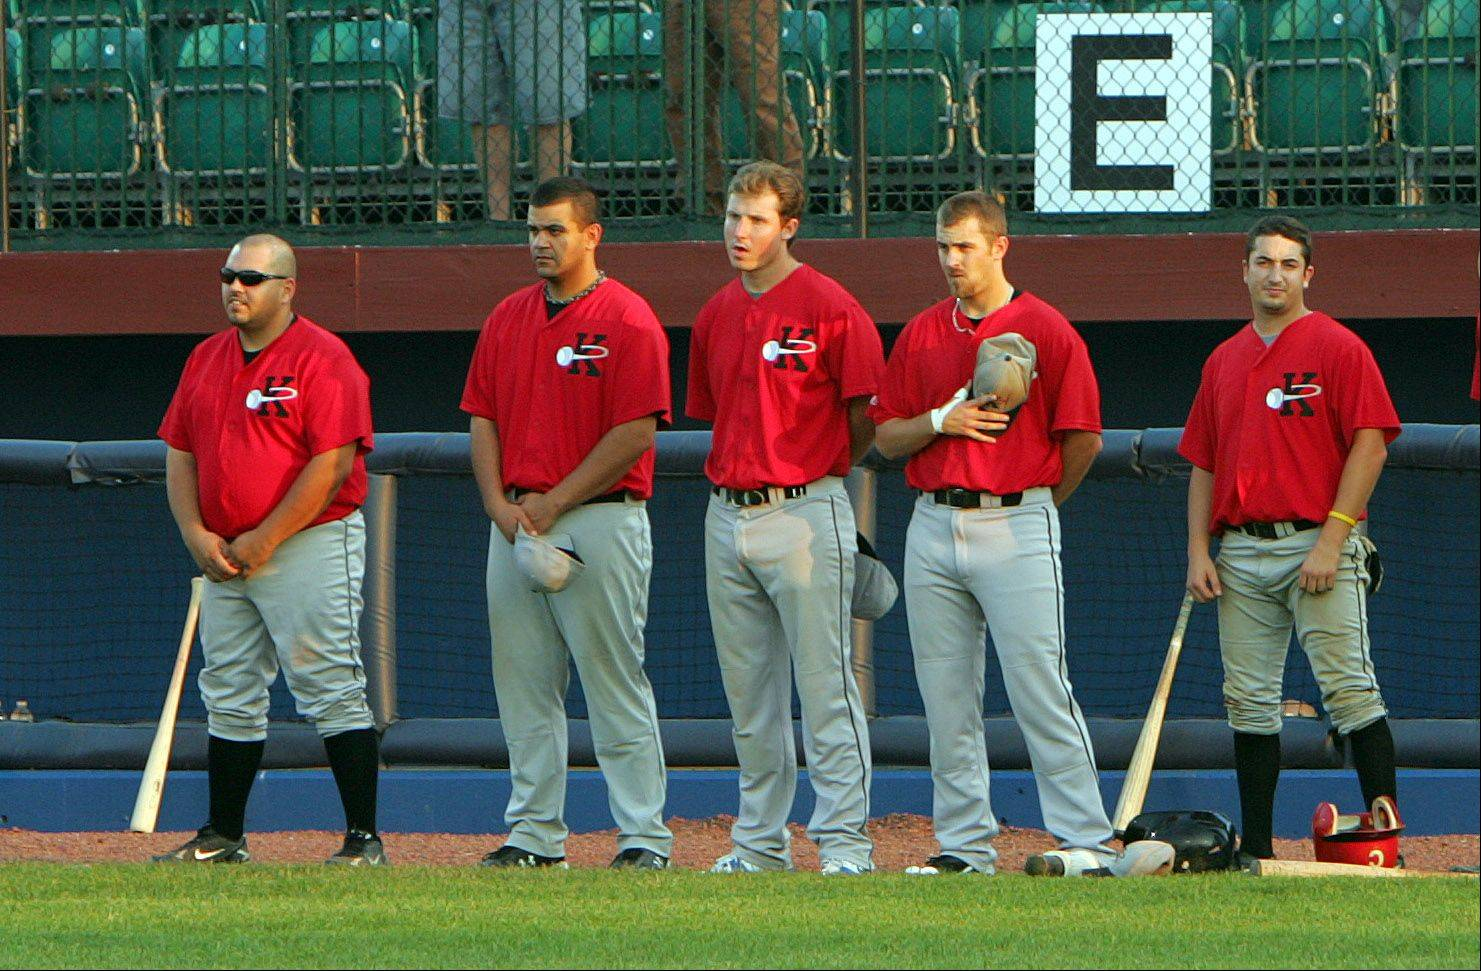 Members of a baseball team identified as the Kenosha County Fielders pause for the national anthem before playing the Lake County Fielders on Wednesday in Zion. The Kenosha squad consists of semipro players from several teams, a spokesman for the Lake County ballclub said.